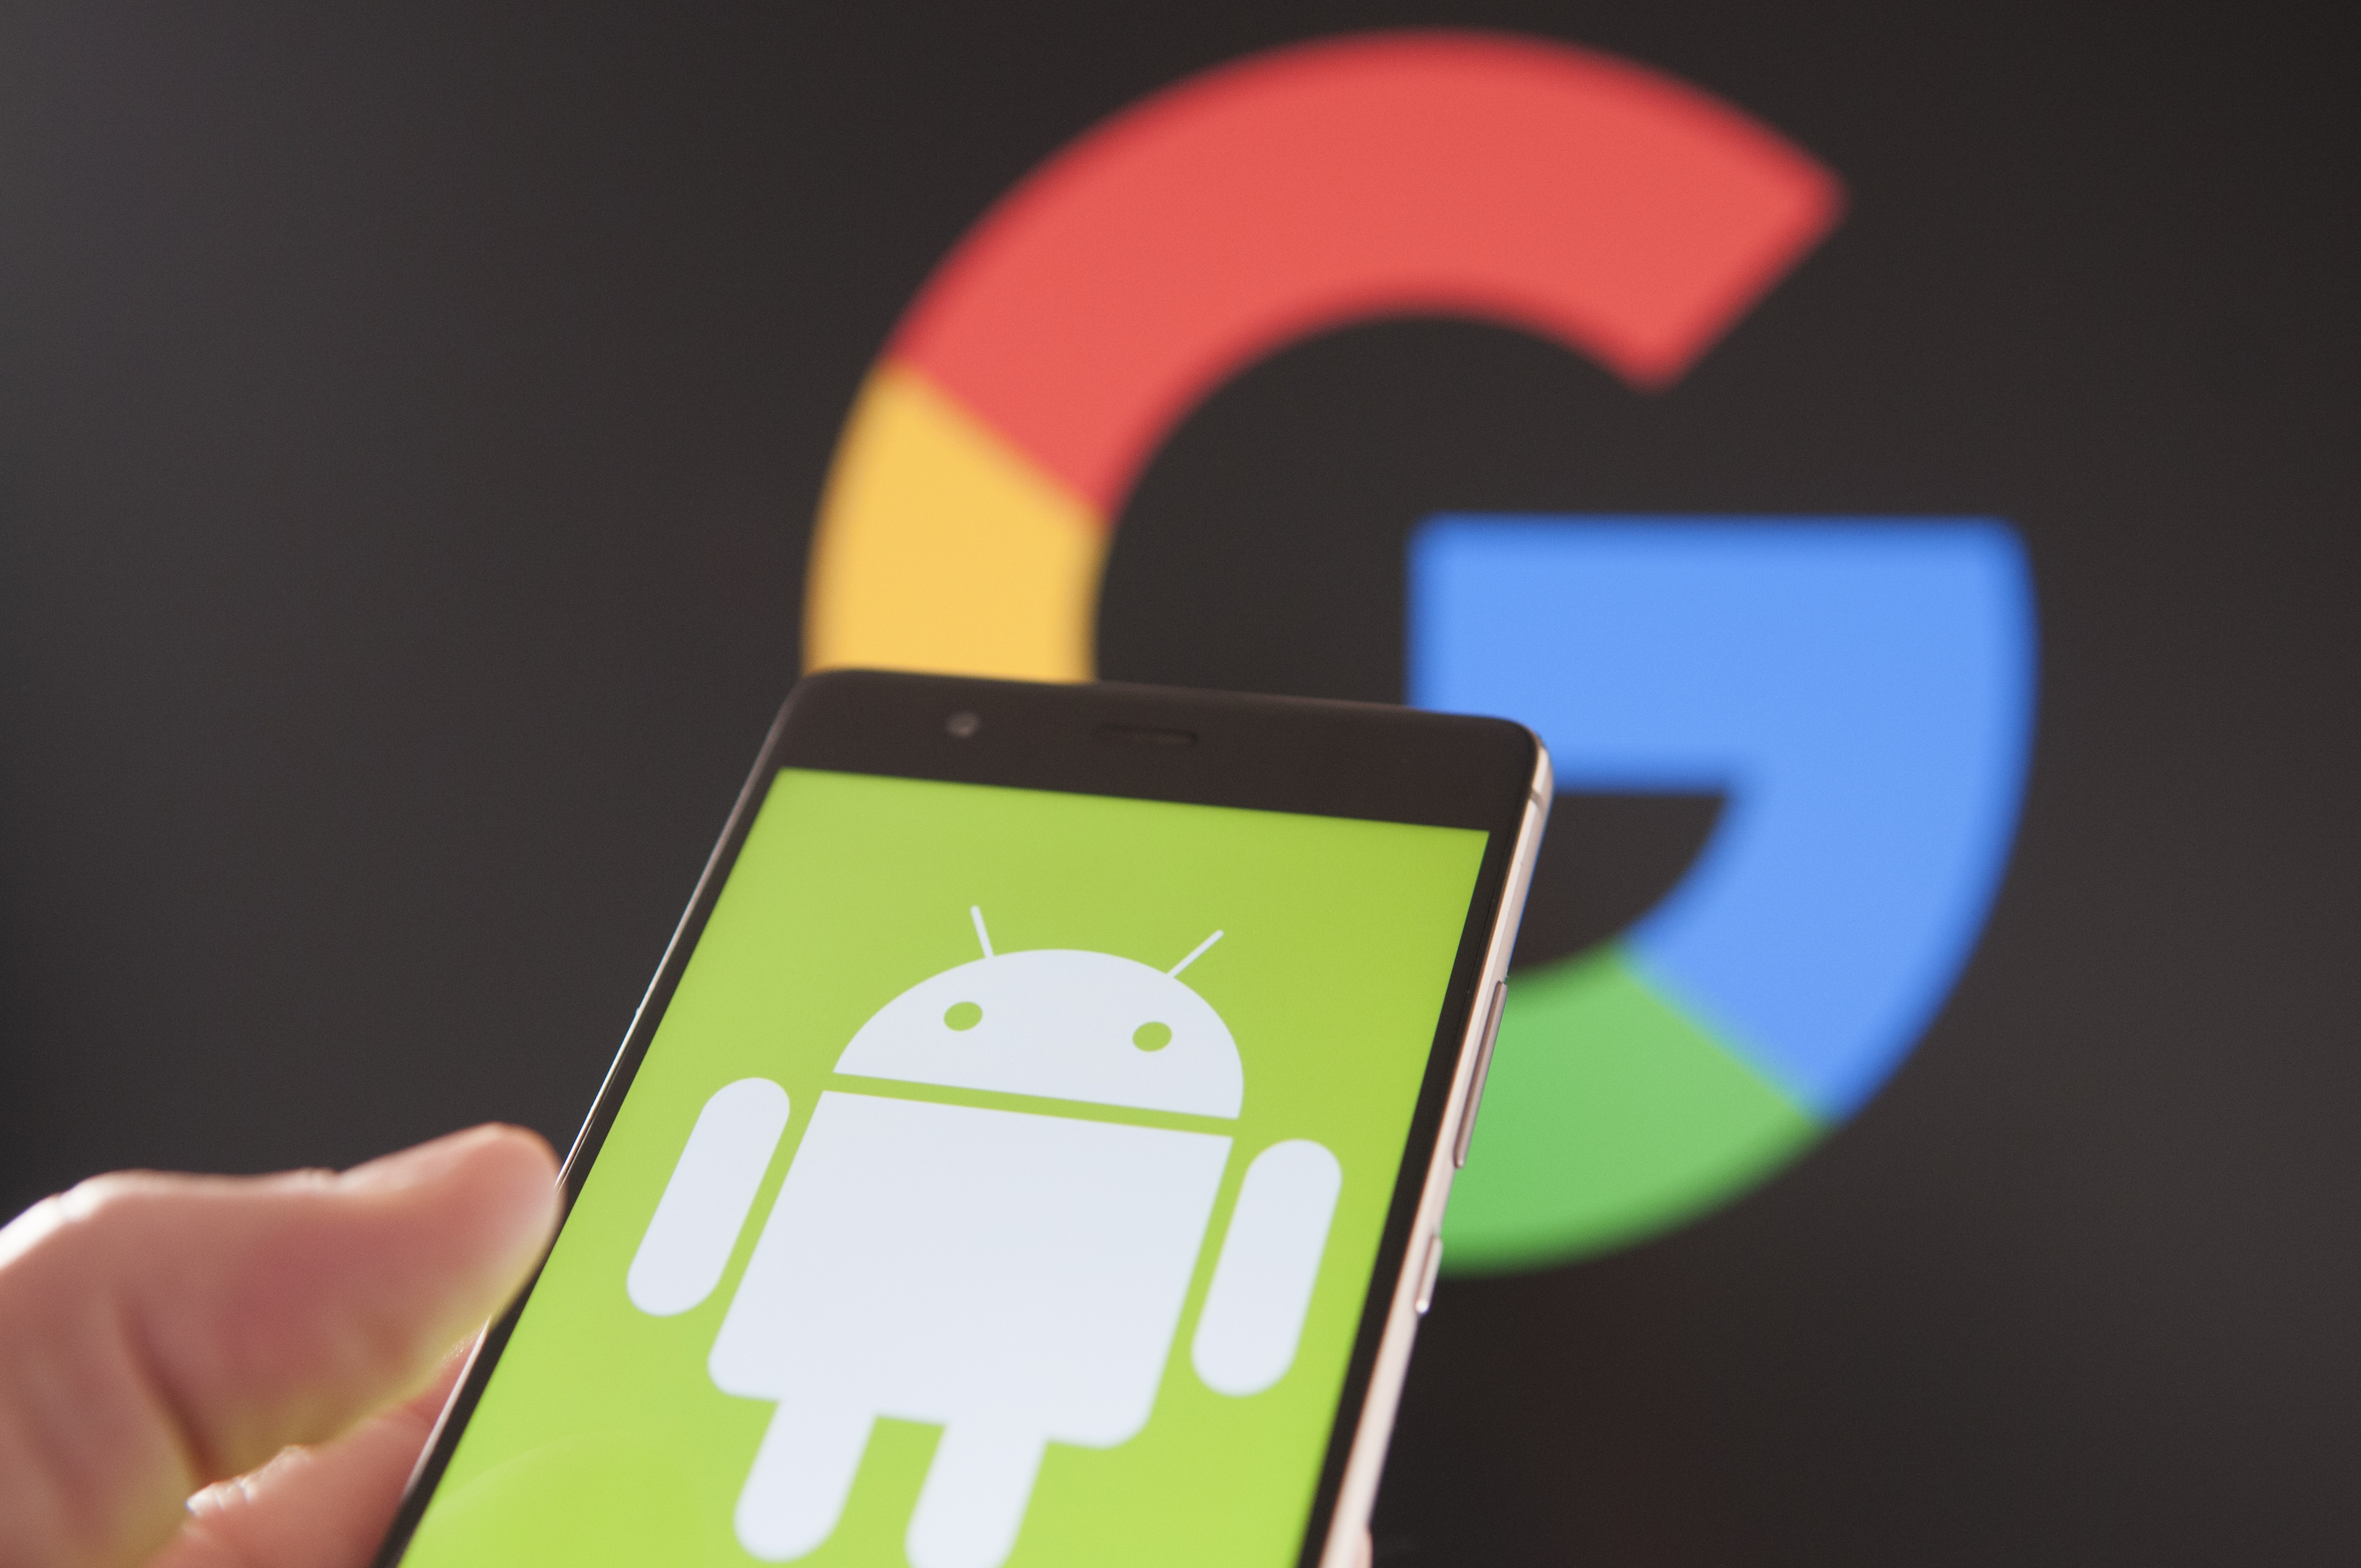 Google's Android Q will be called Android 10, ending the company's tradition of naming new versions after desserts.